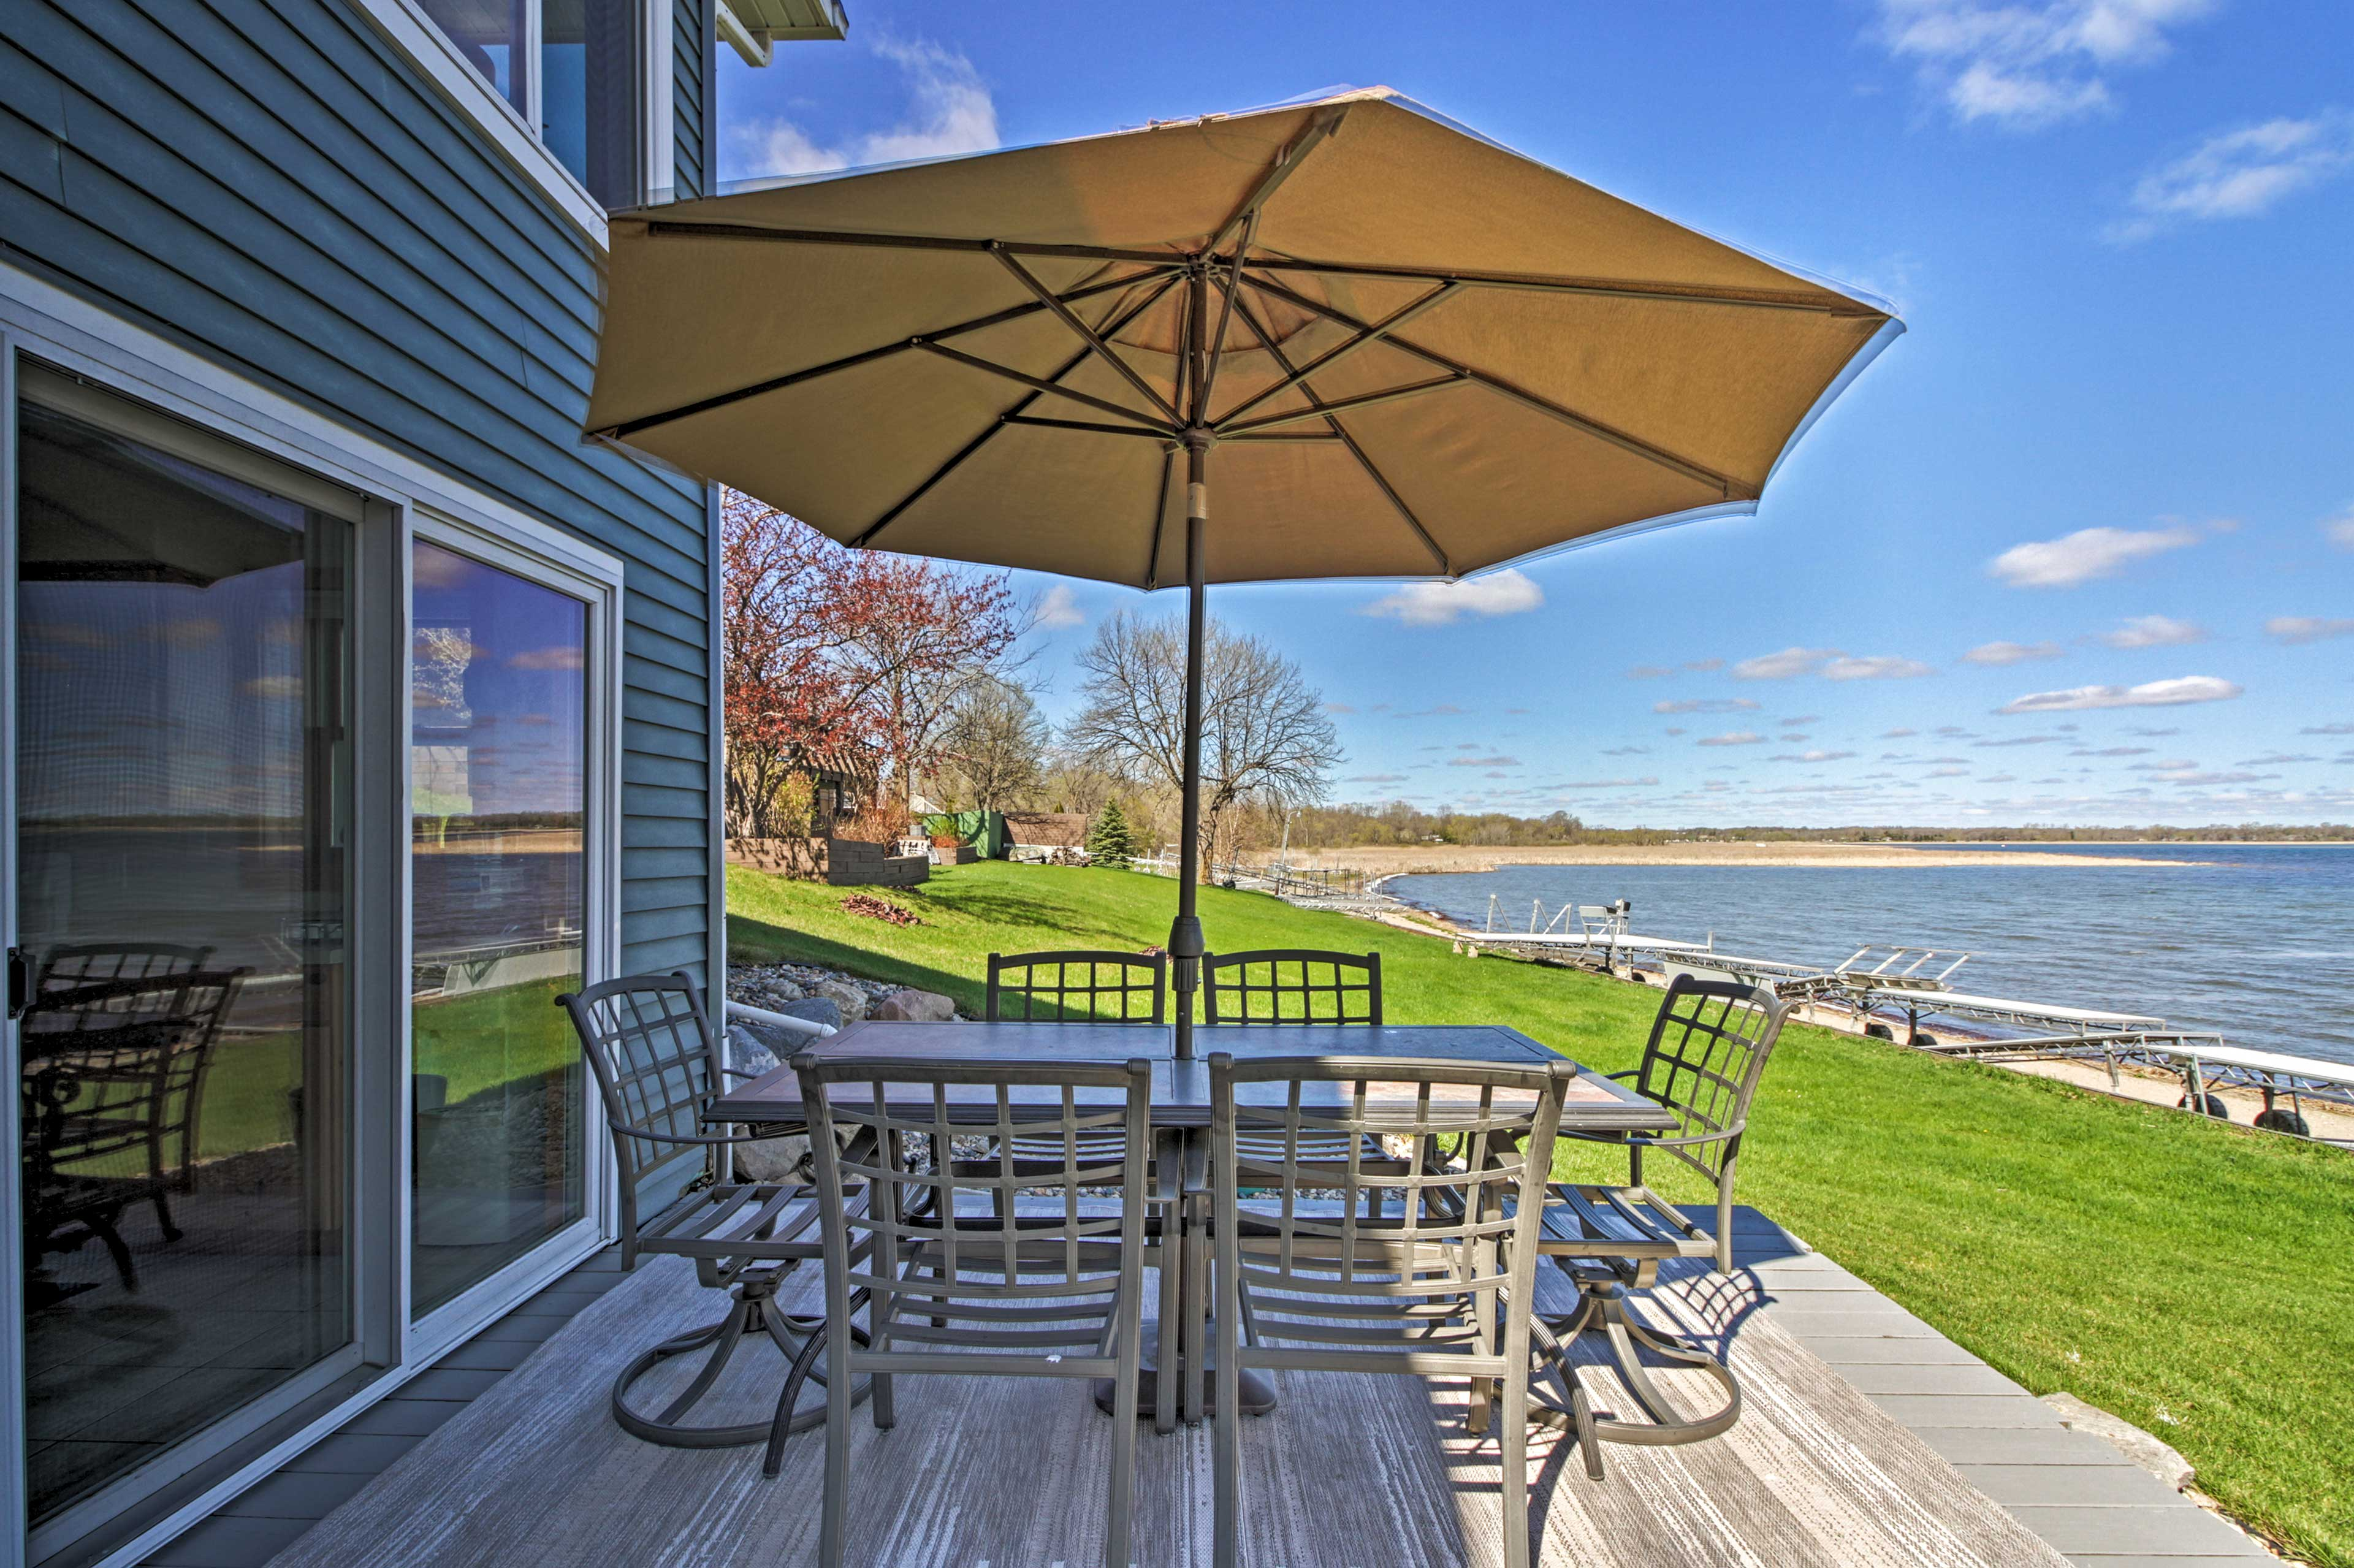 Home Exterior   Dining Area   Fire Pit   Direct Lake Access